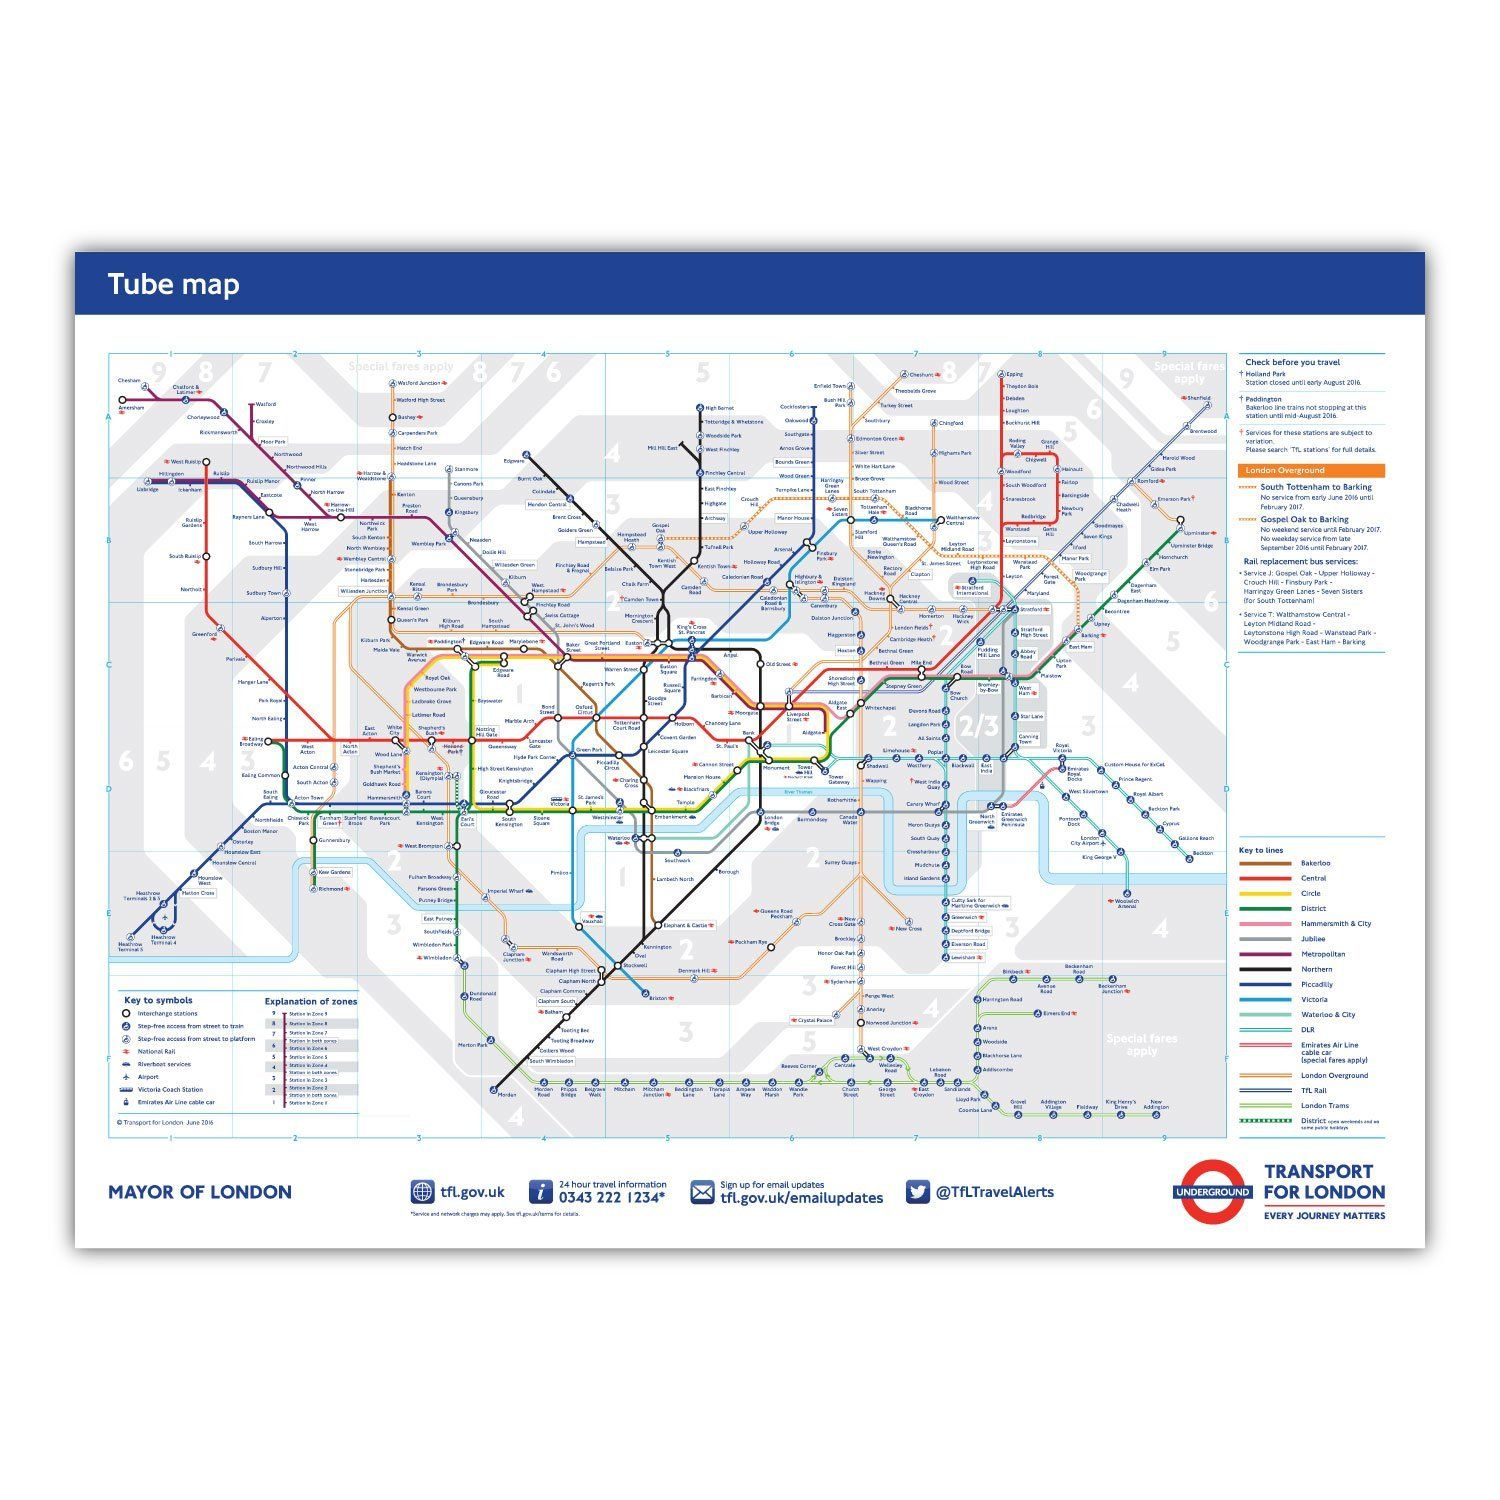 standard london underground tube station map poster june 2016 a2 594x420mm